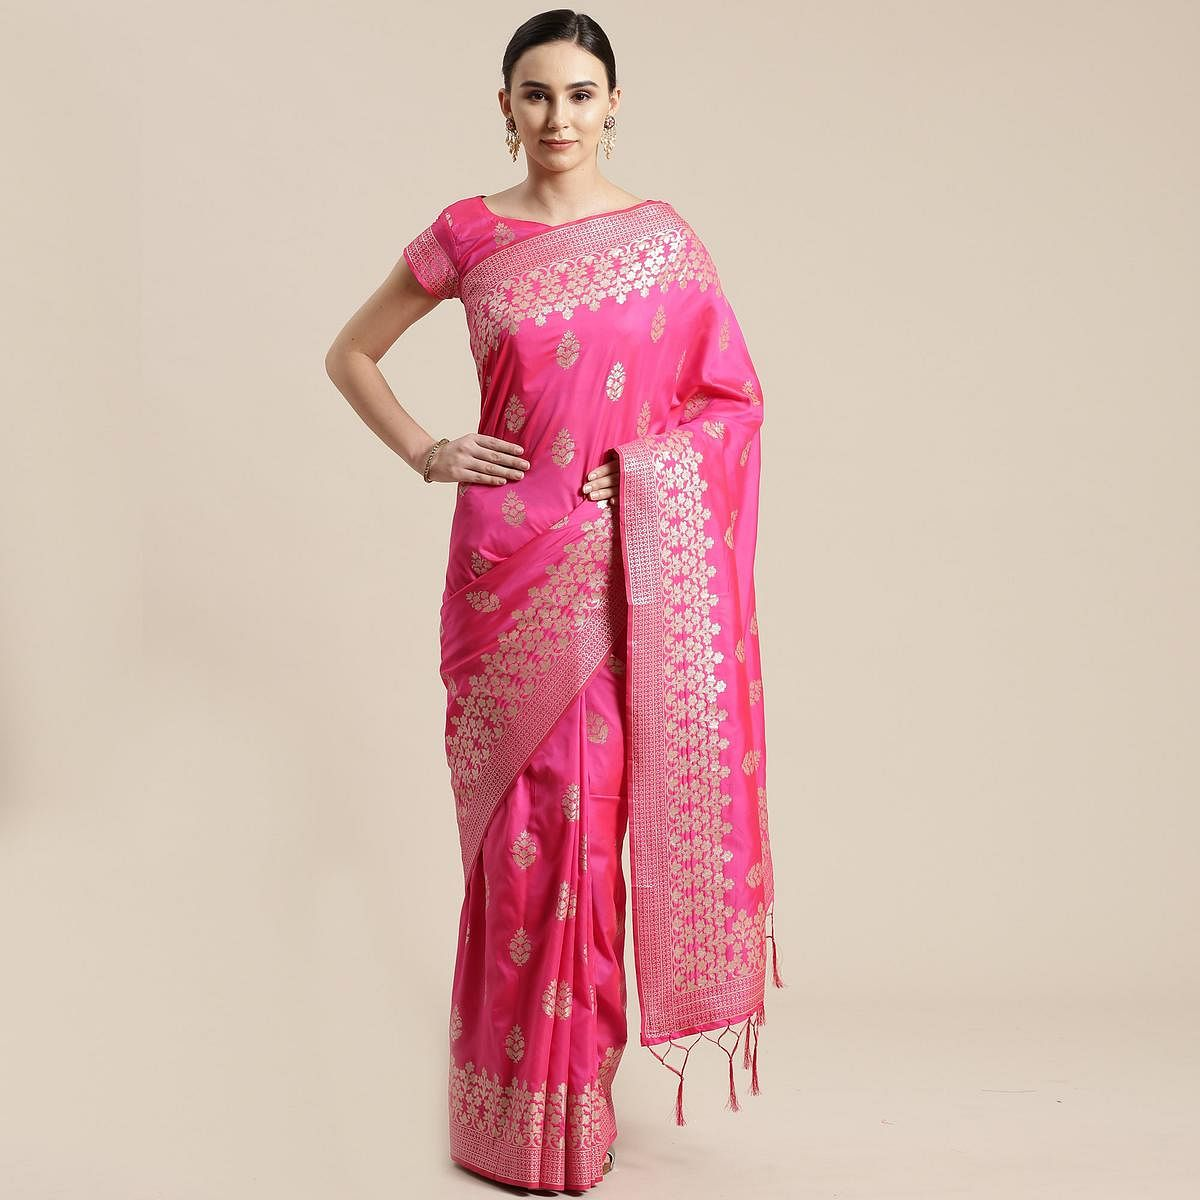 Fantastic Pink Colored Festive Wear Silk Blend Woven Floral Saree With Tassels